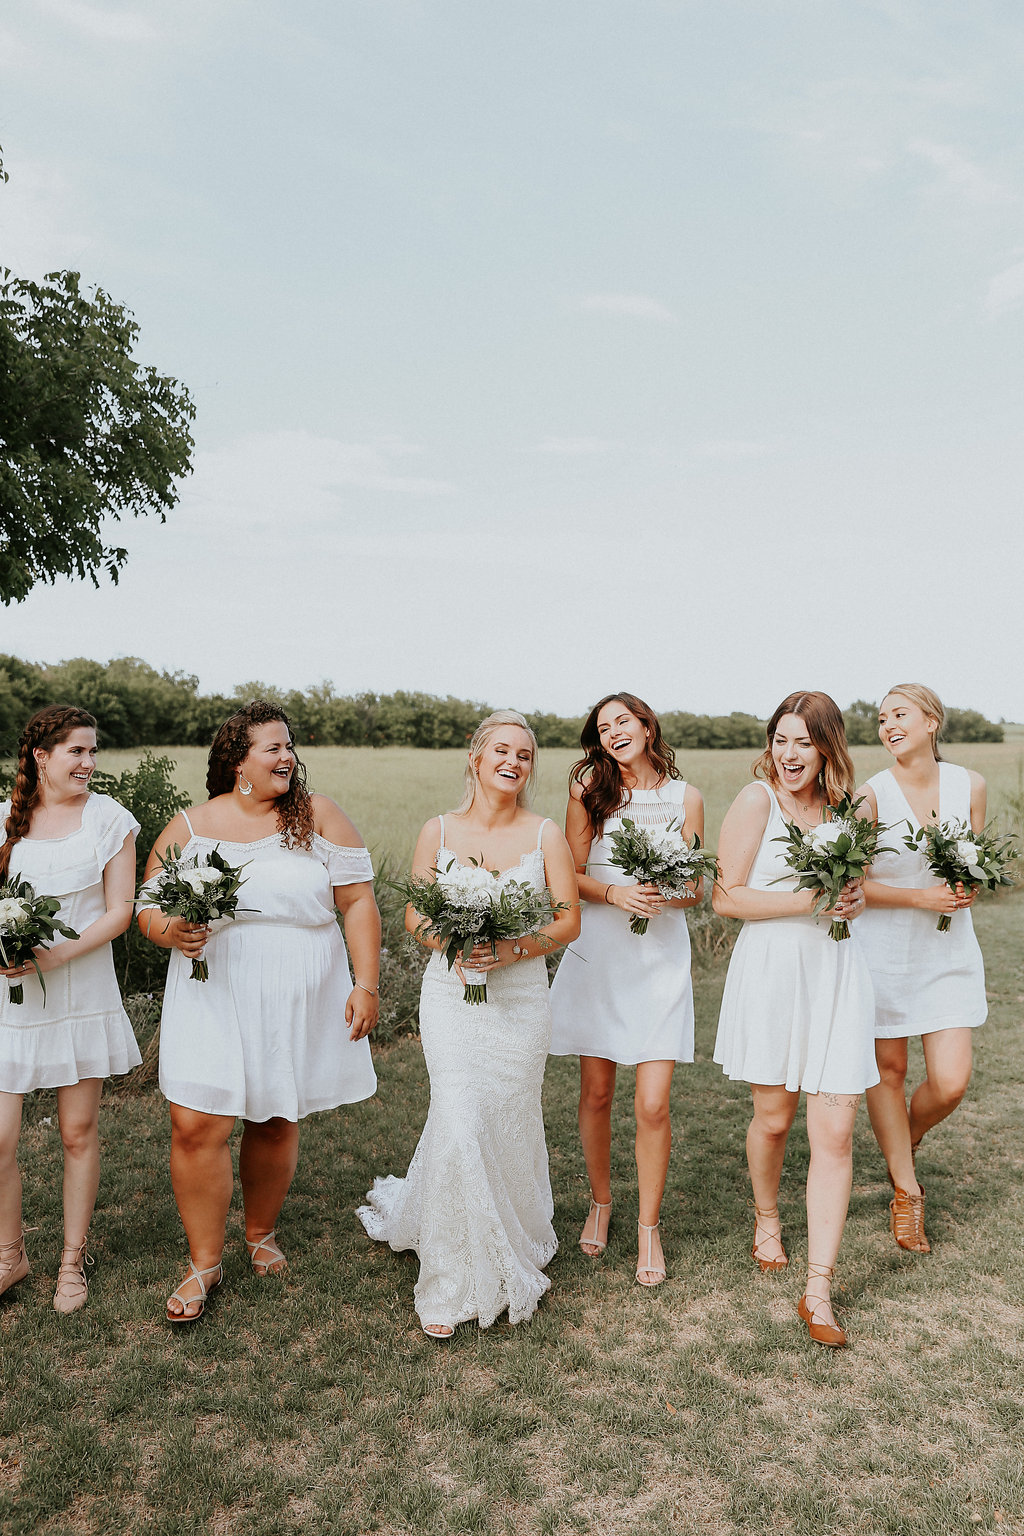 These mix-matched, white bridesmaid dresses gave the whole wedding party a fresh and simple look that is a beautiful trend this season, especially when paired with the extra greenery in the bouquets!